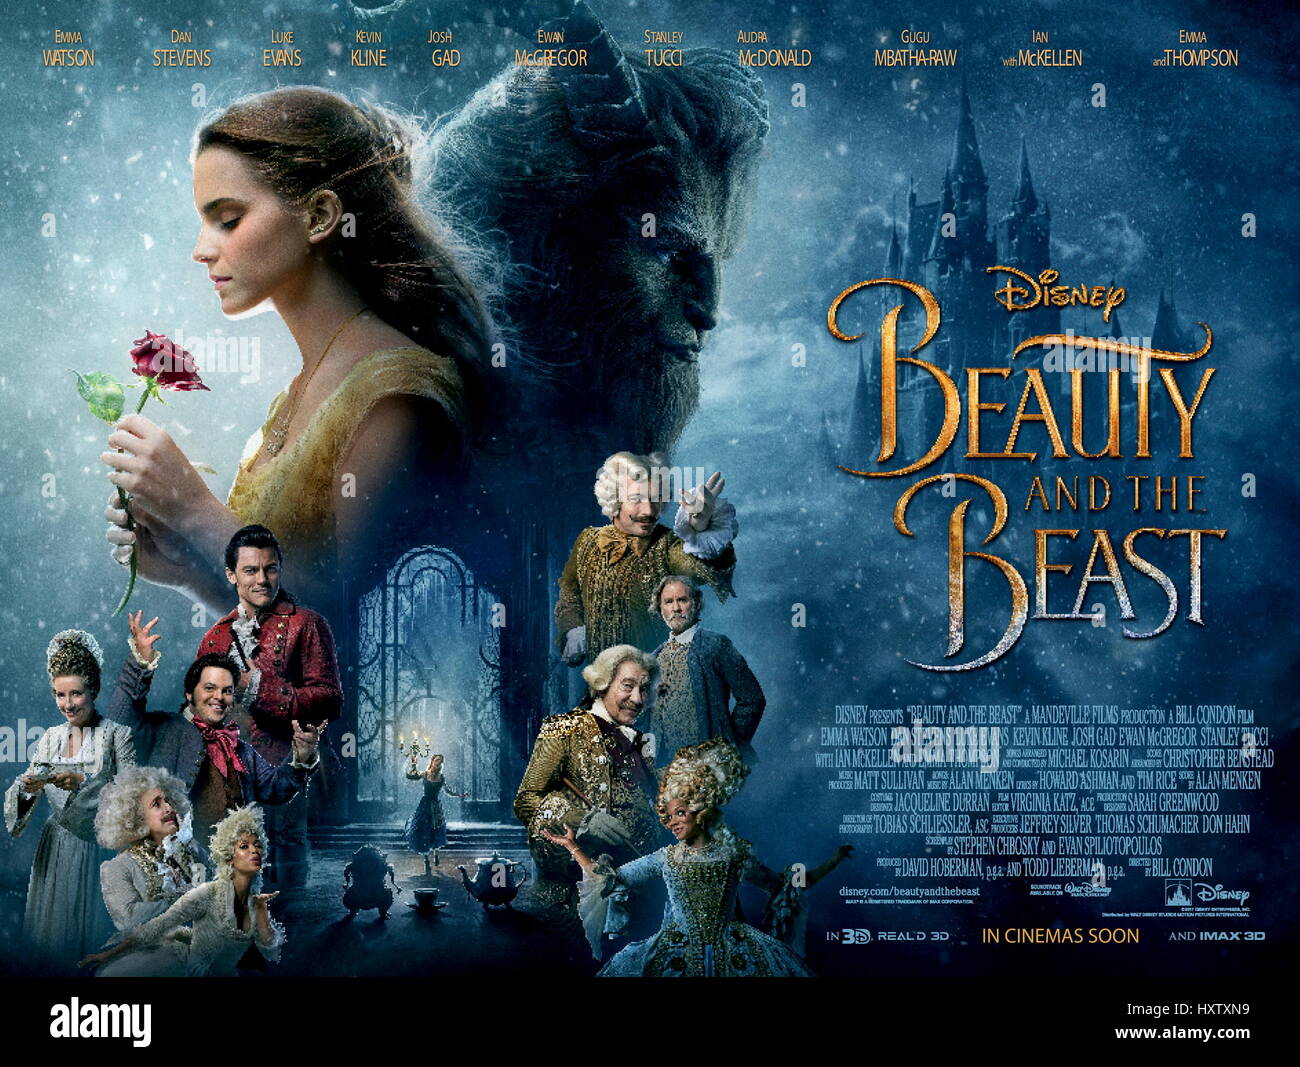 RELEASE DATE March 17 2017 TITLE Beauty And The Beast STUDIO Walt